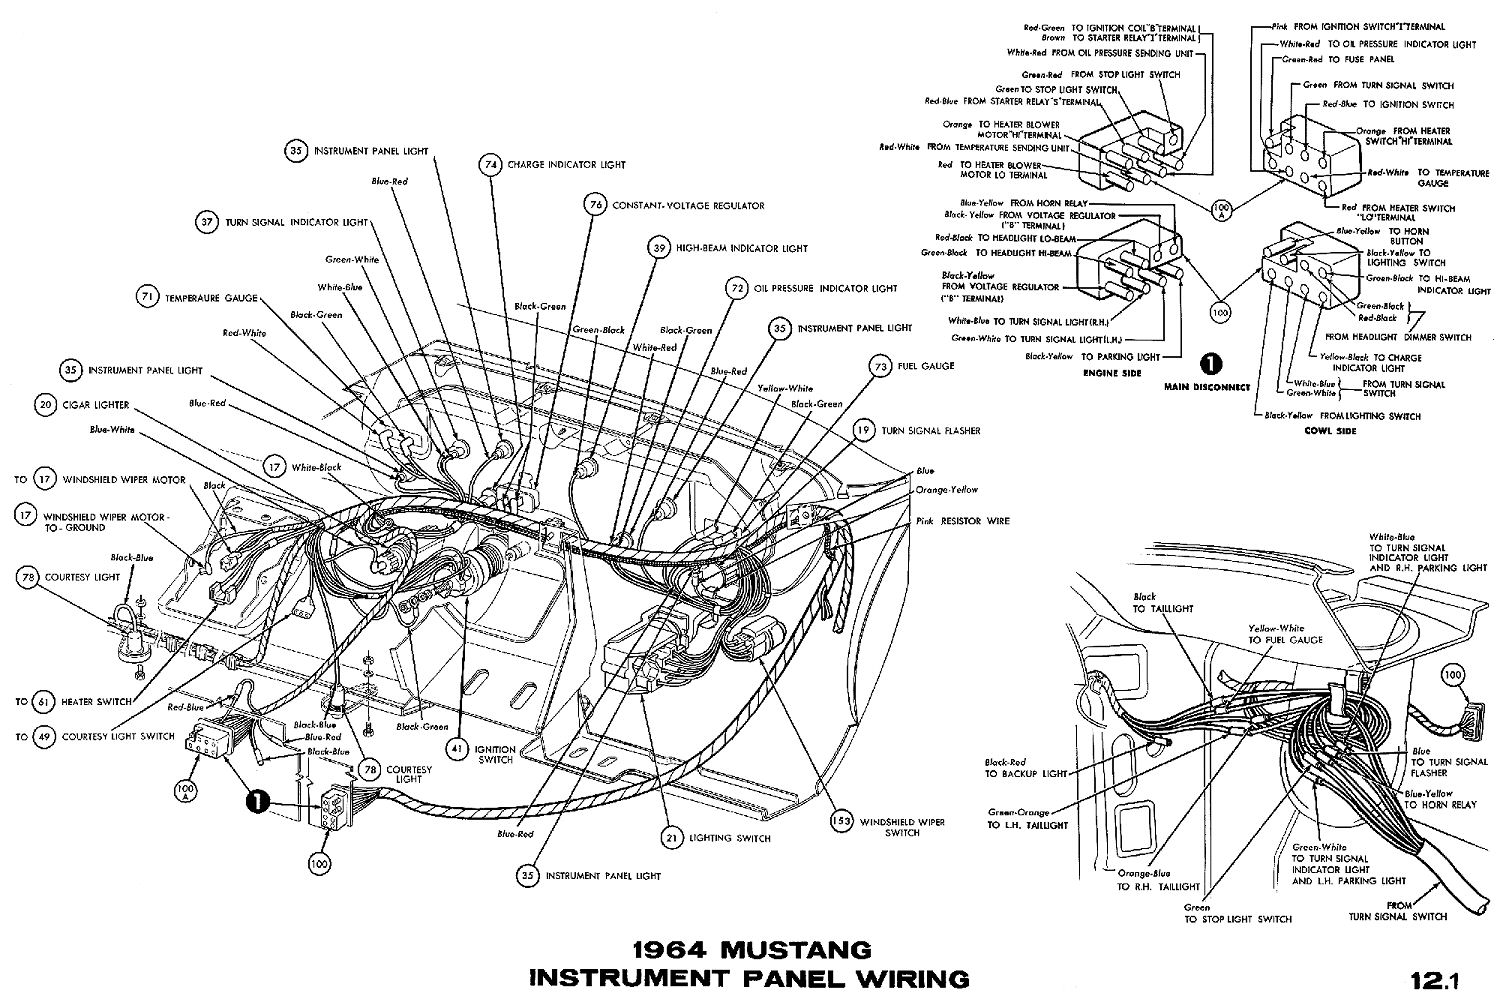 1964b 1964 mustang wiring diagrams average joe restoration F100 Wiring Diagram at gsmx.co